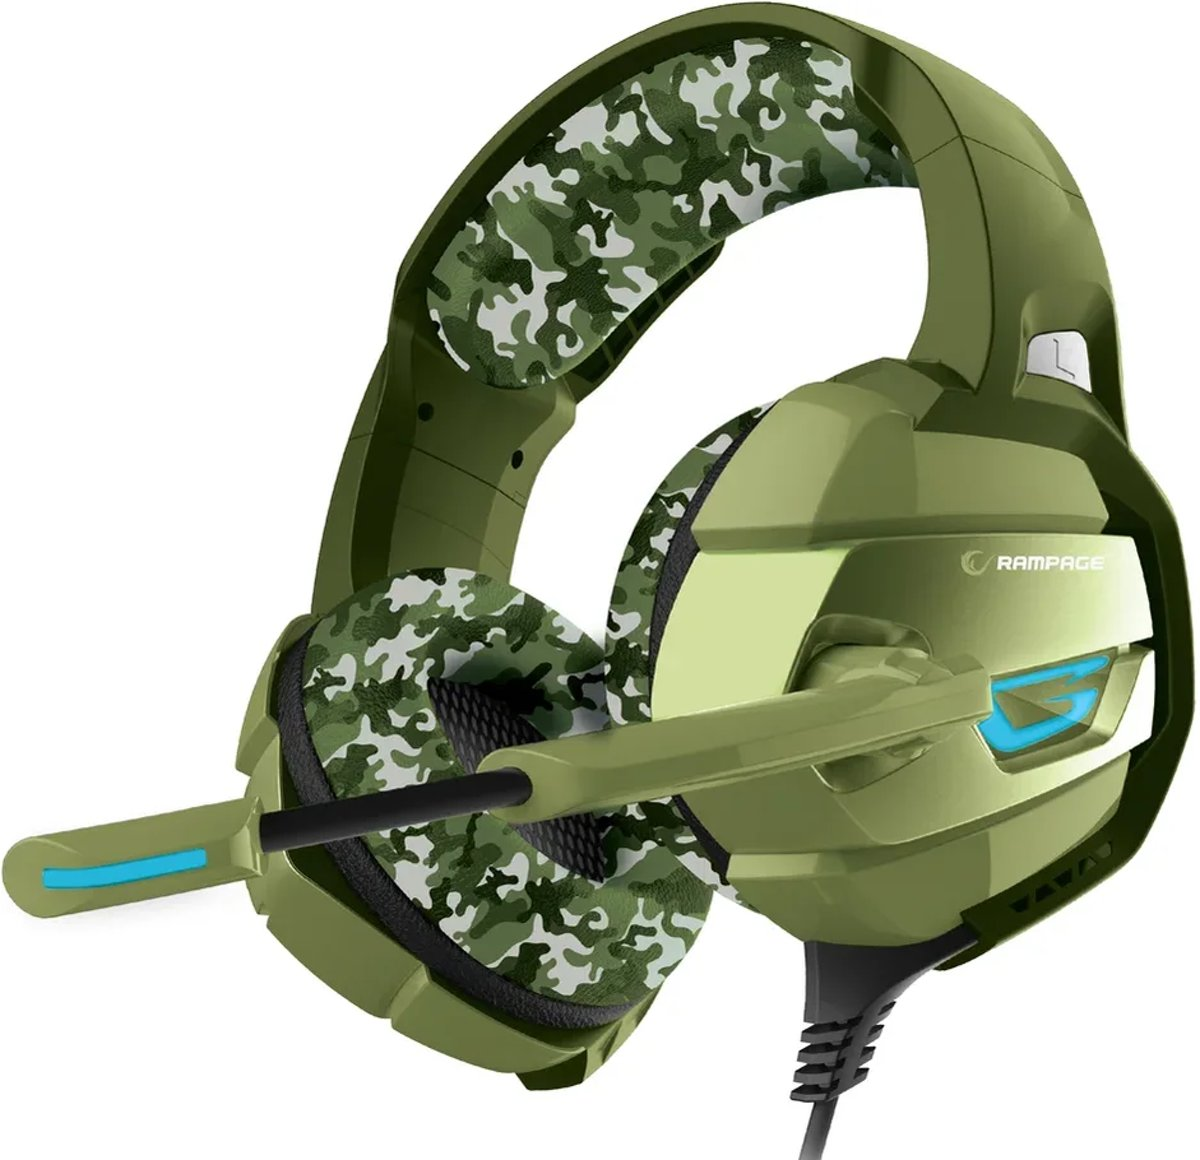 RM-K5 camouflage 7.1 surround sound gaming headset